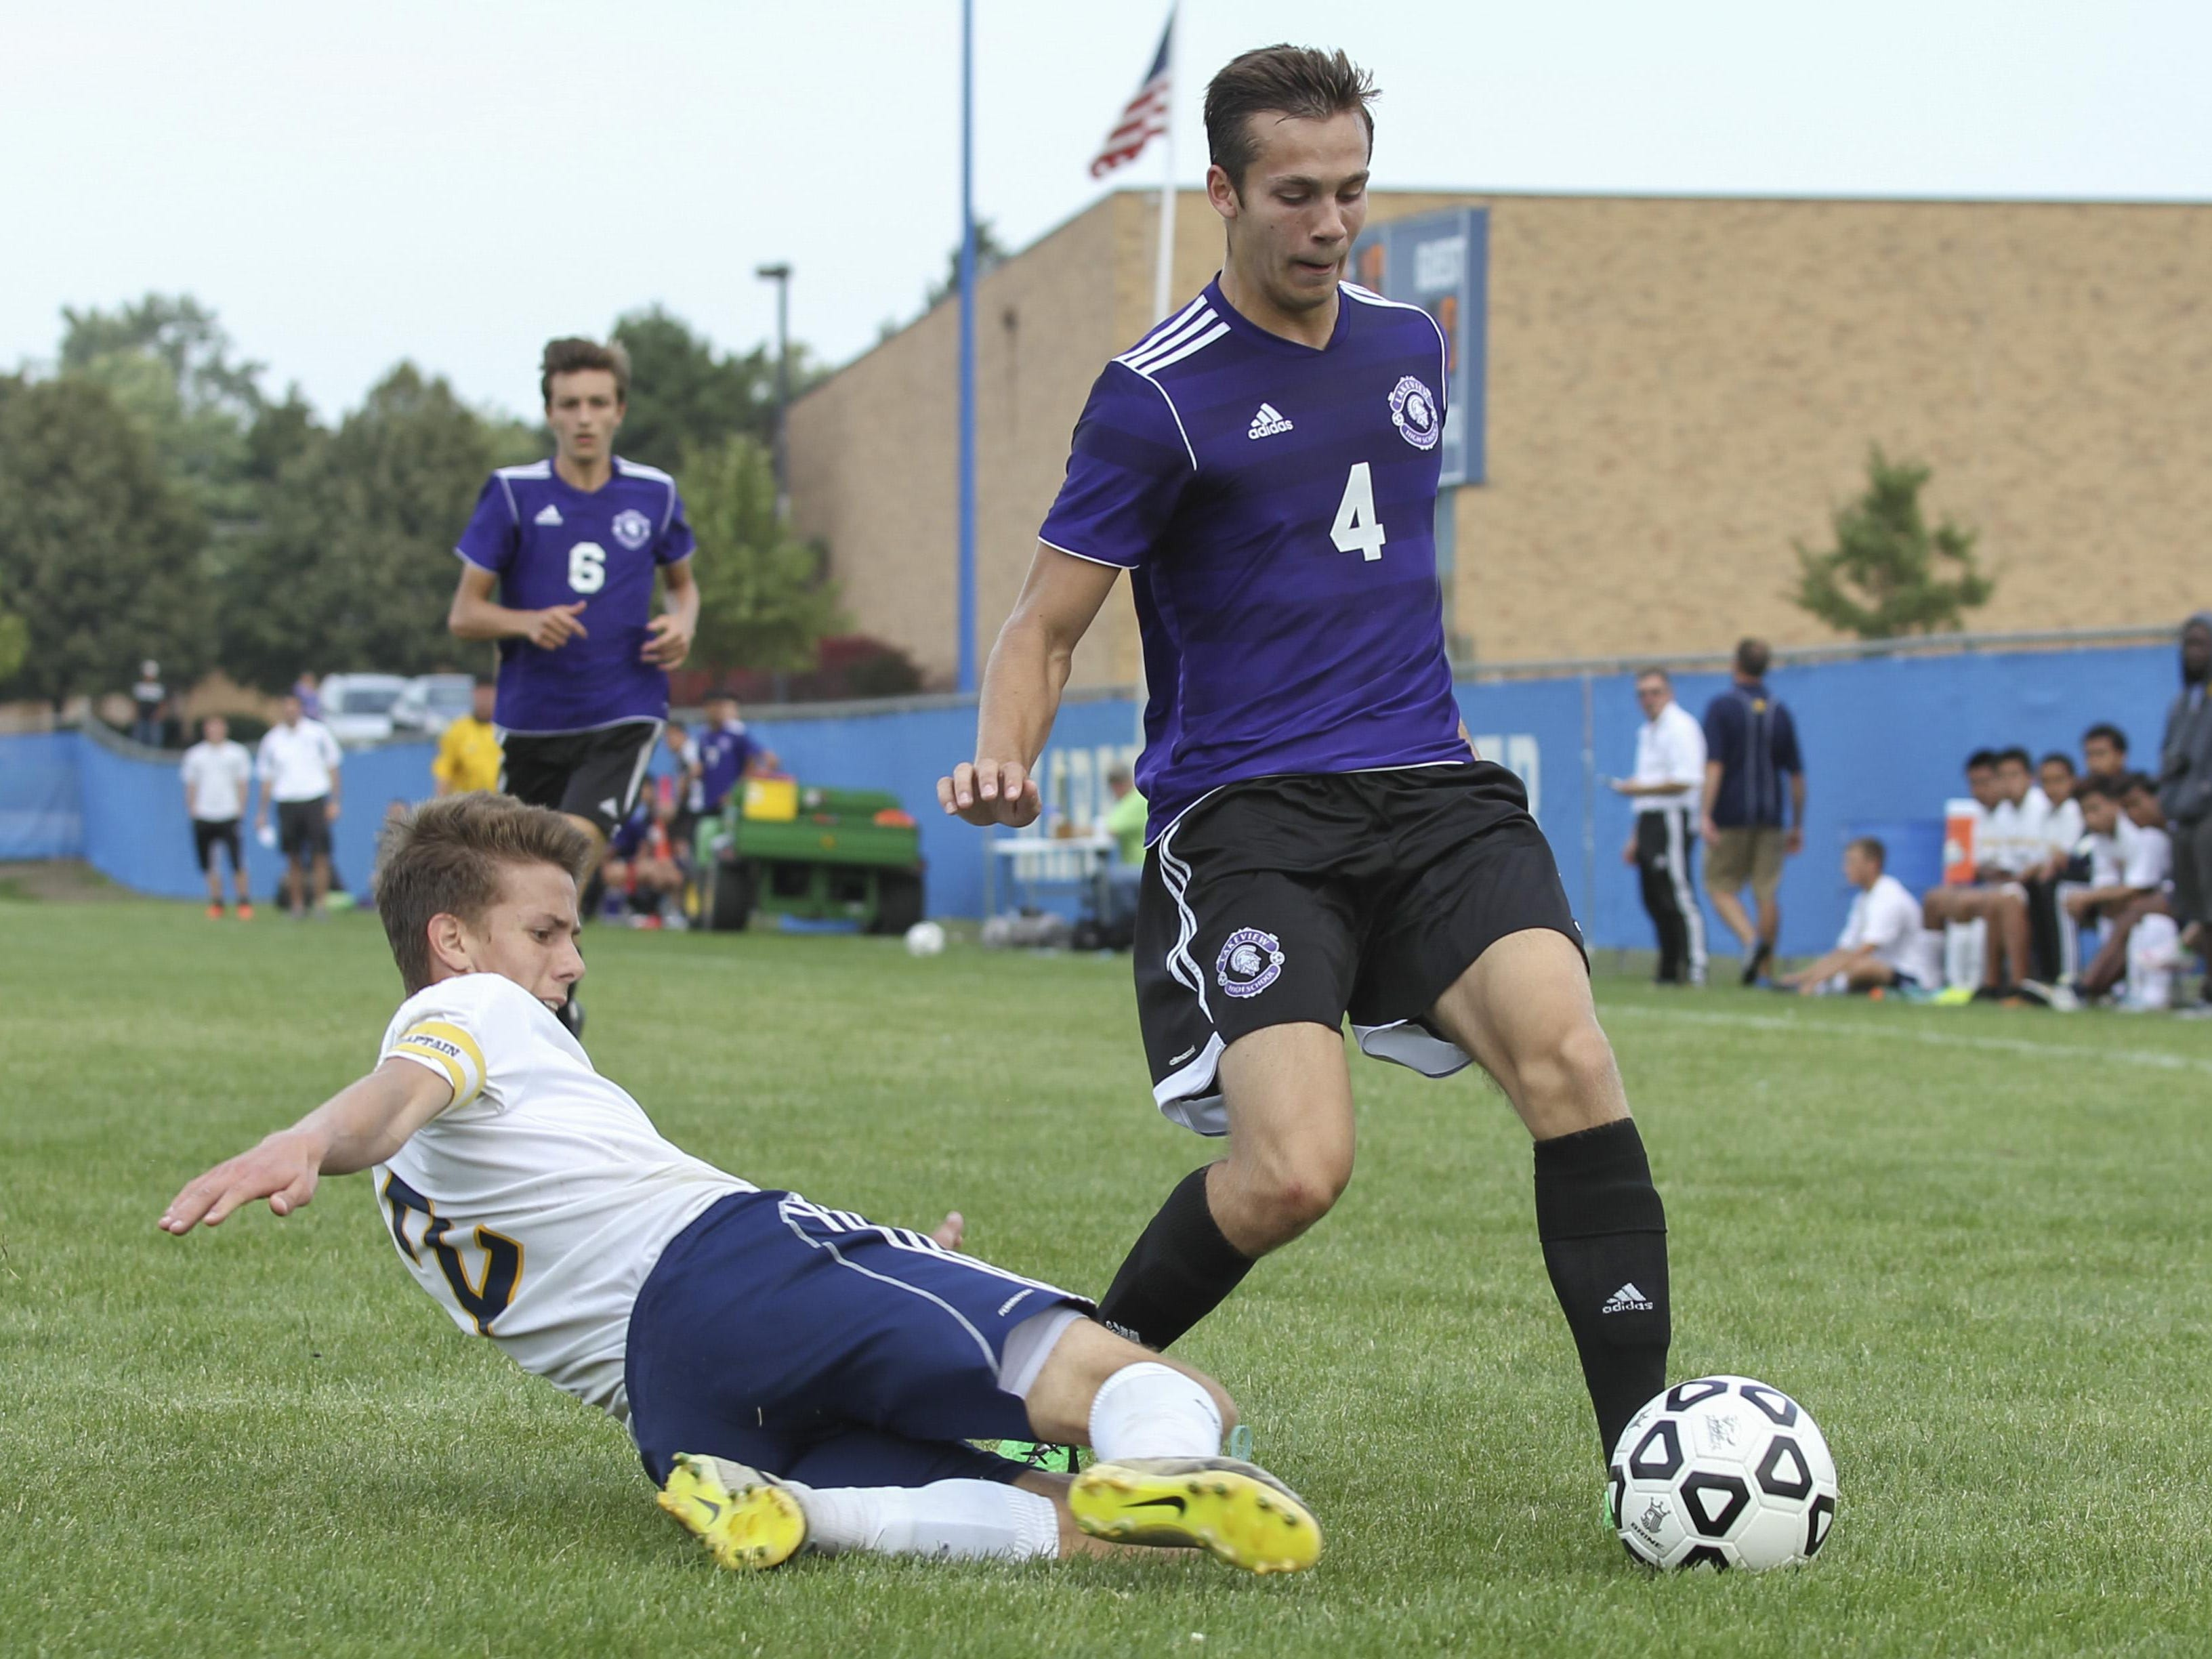 Lakeview's Parker Beuker (4) and Battle Creek Central's Nicholas Insley will meet again on the soccer field in the All-City championship on Saturday.